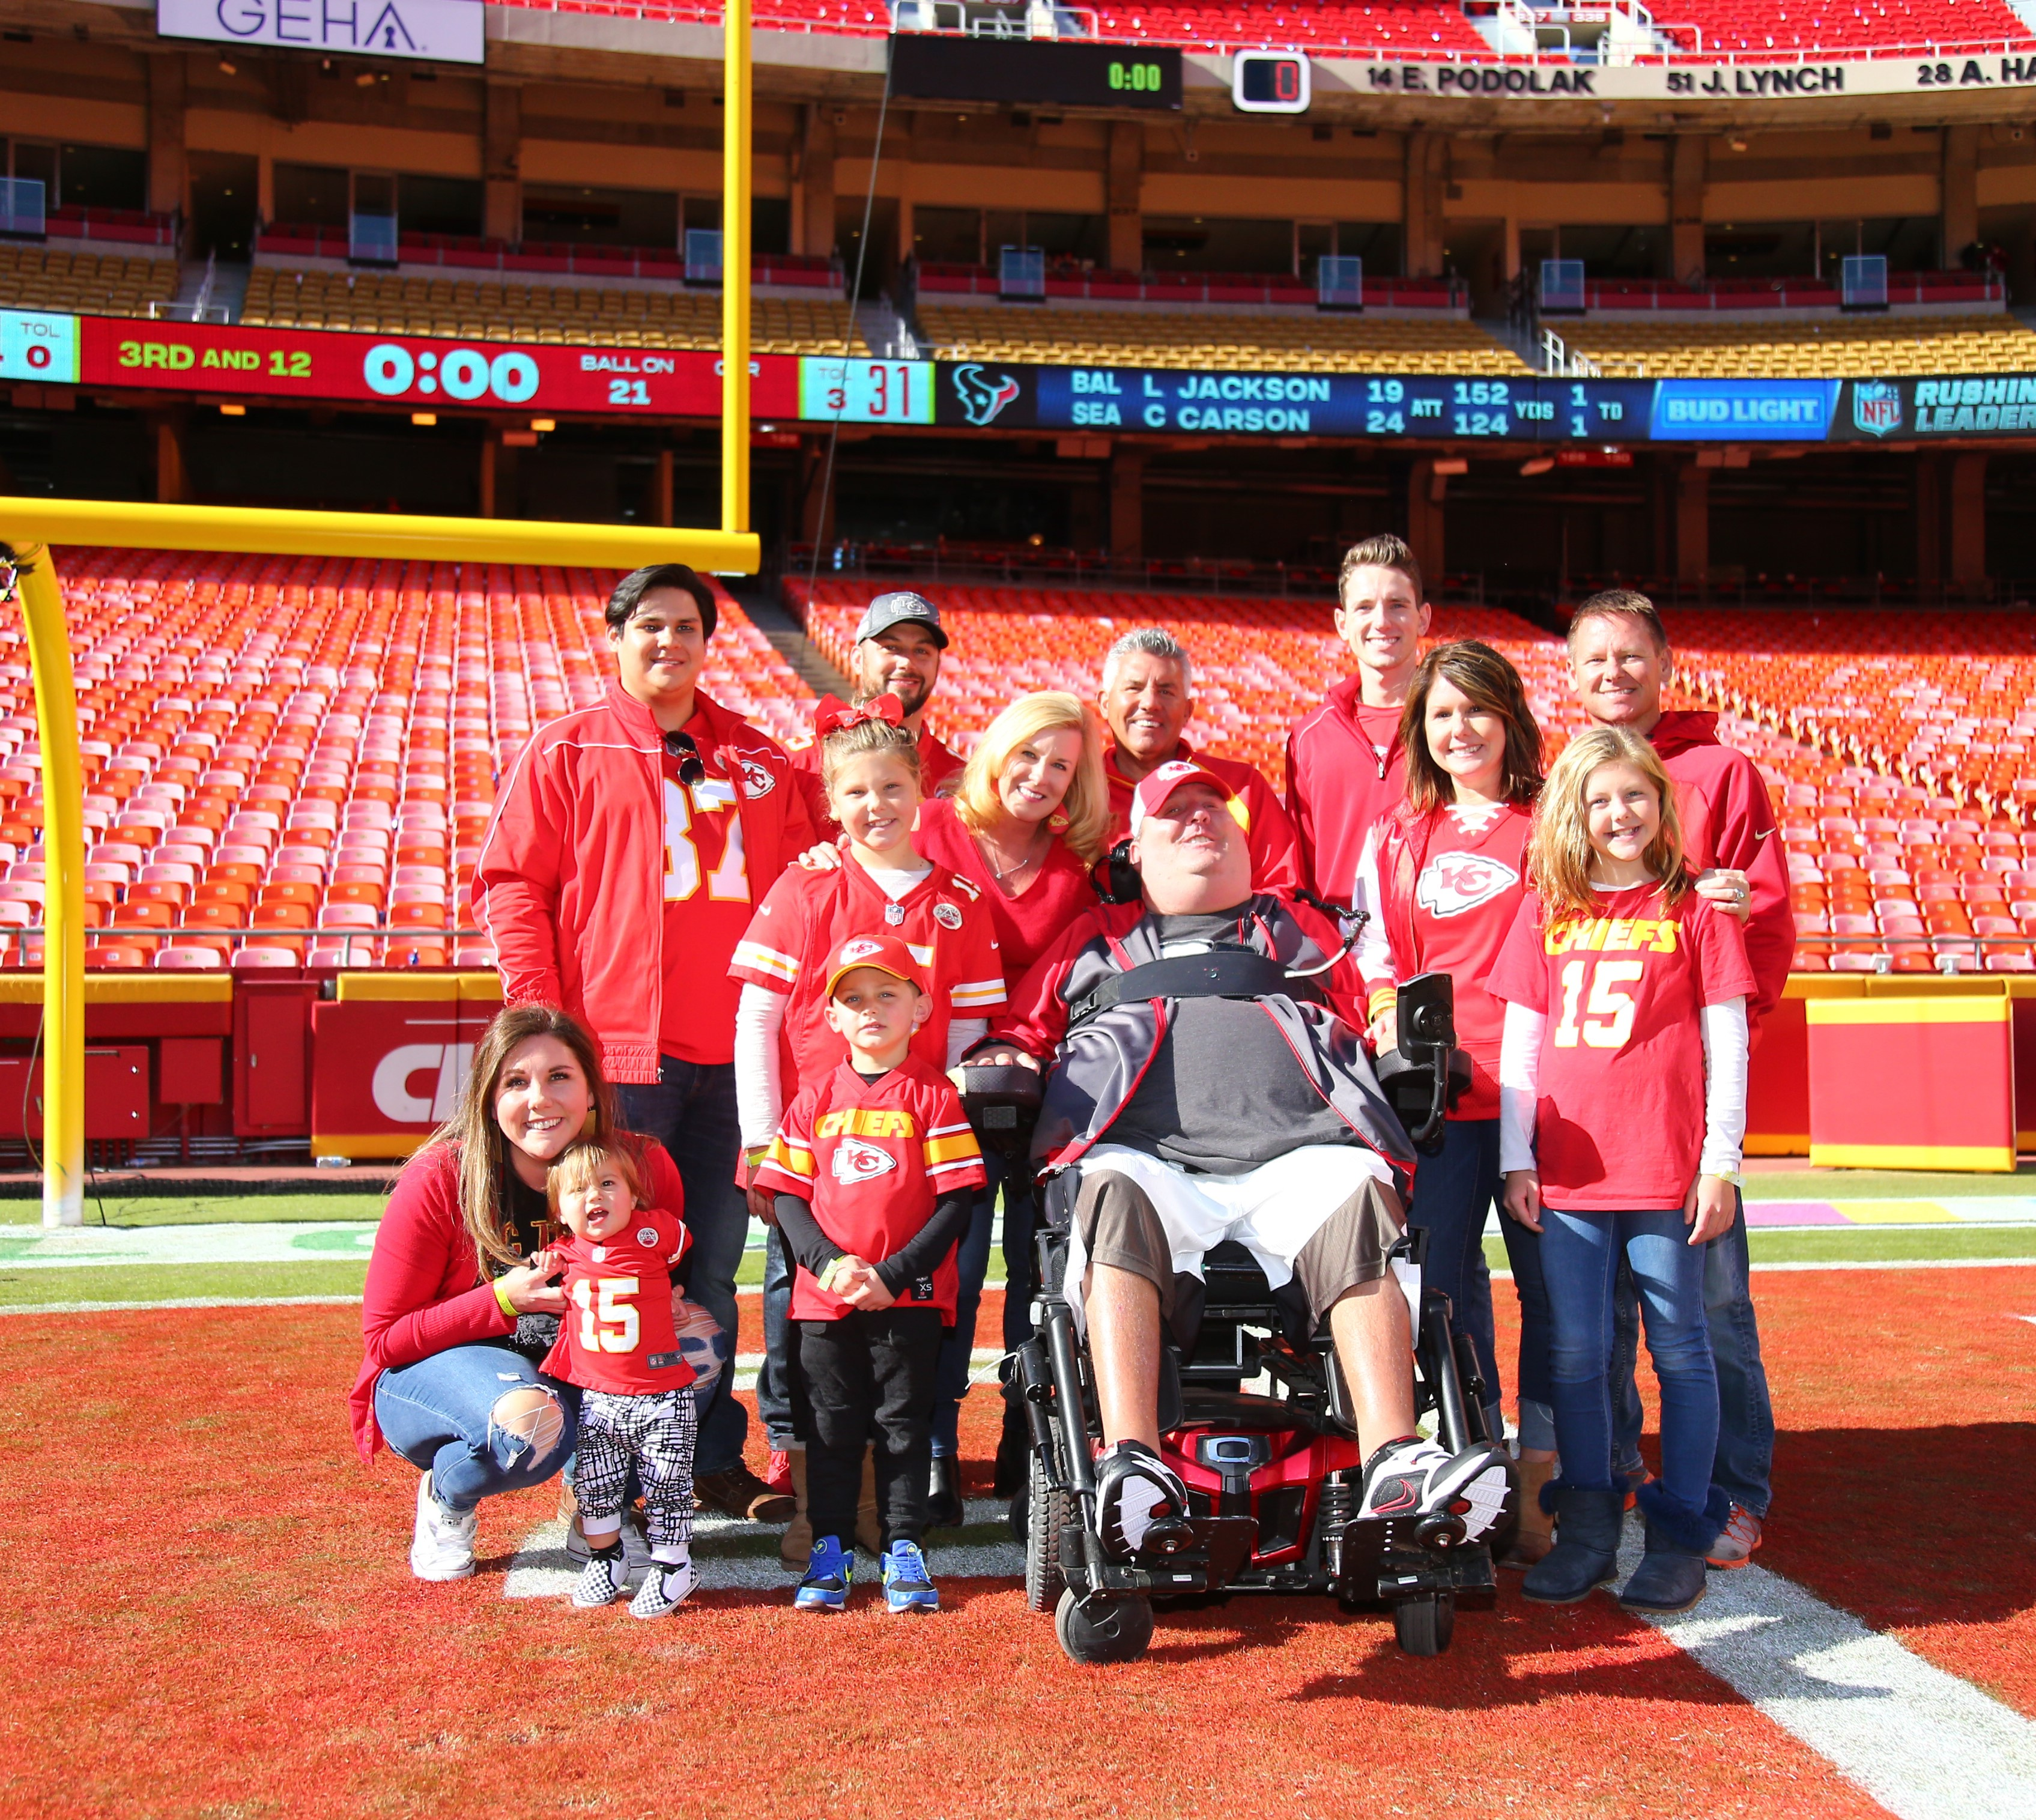 The Baier family (13 people) on the football field at Arrowhead Stadium. They are smiling and wearing red Kansas City Chiefs shirts.